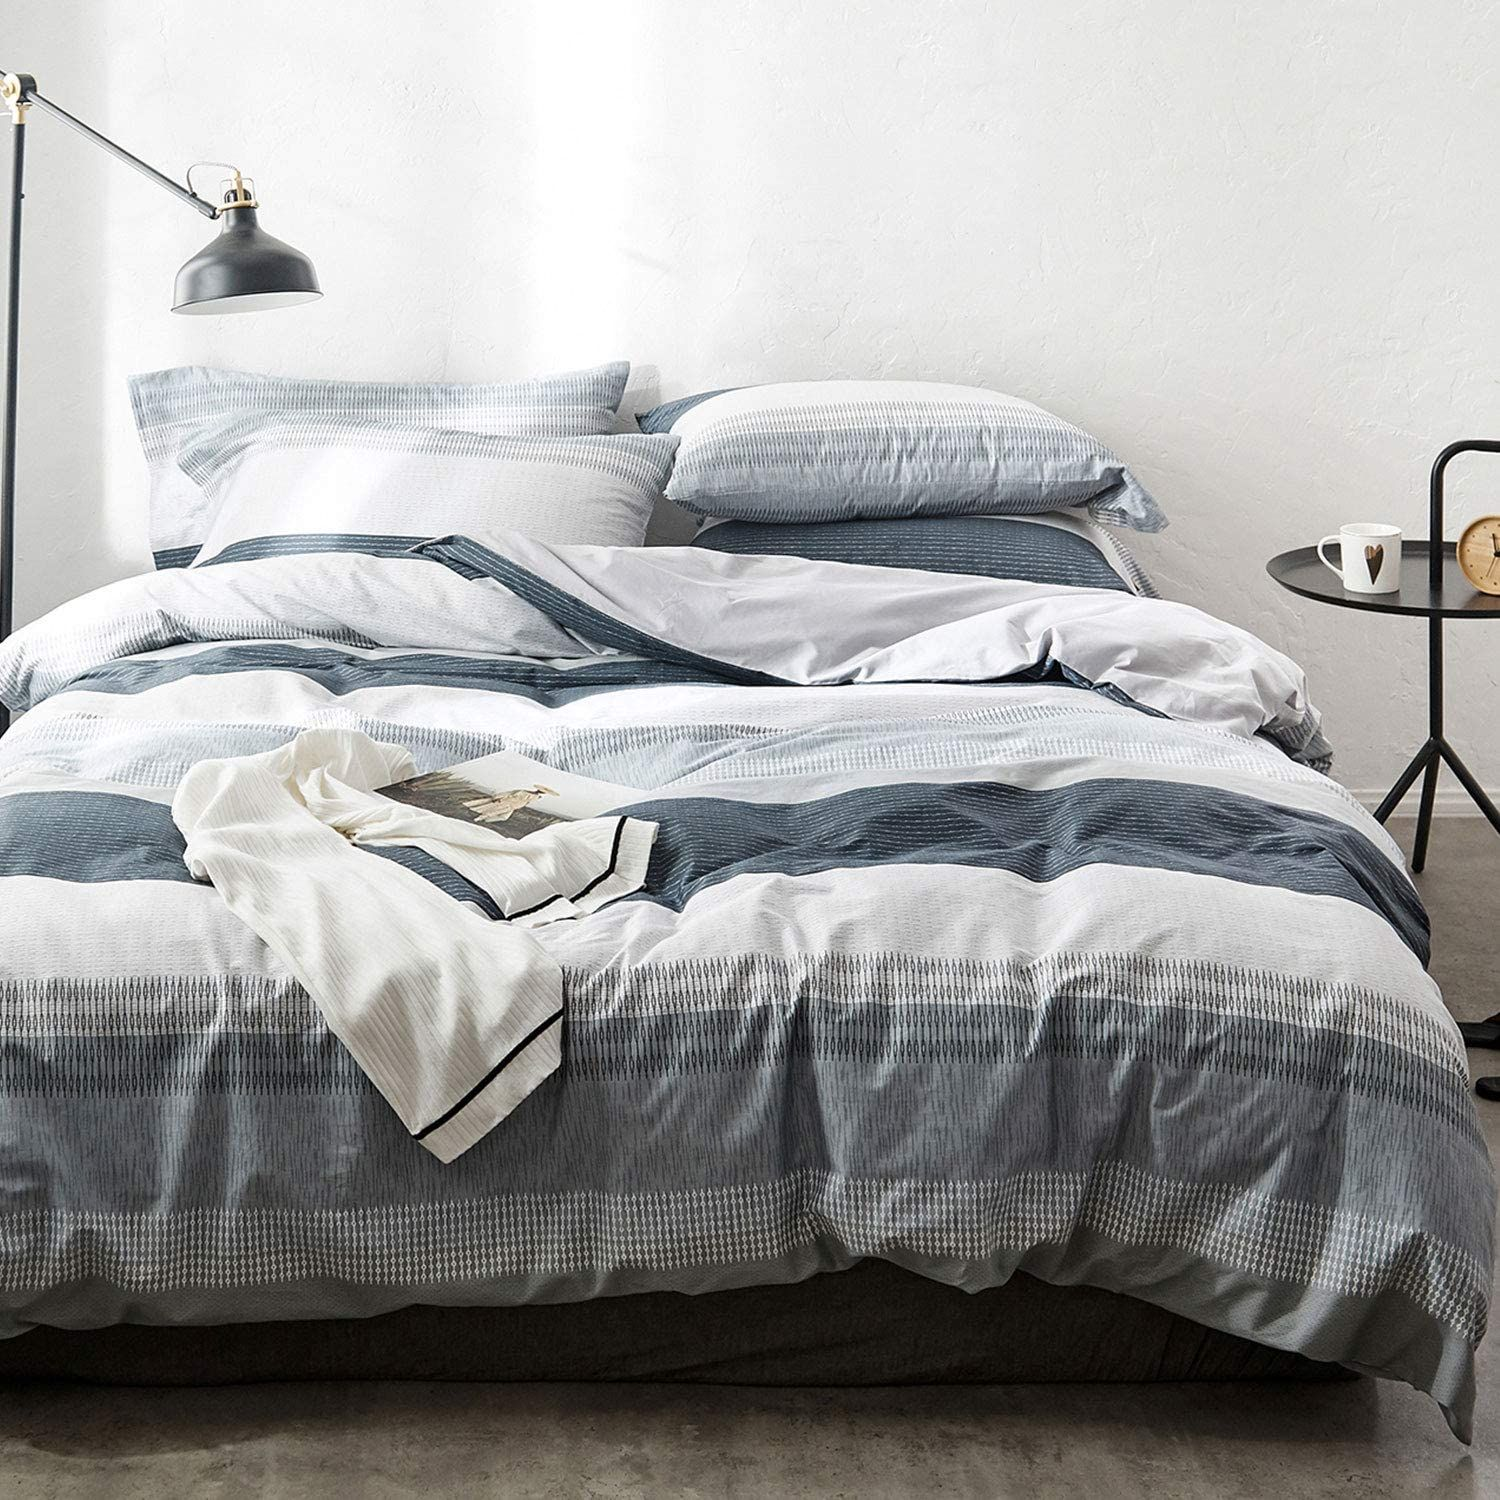 Oreise Duvet Cover Set Full Queen Size 100 Cotton Bedding Set Gray Blue White Printed Striped S Bedding Sets Grey Cotton Bedding Sets Duvet Cover Sets